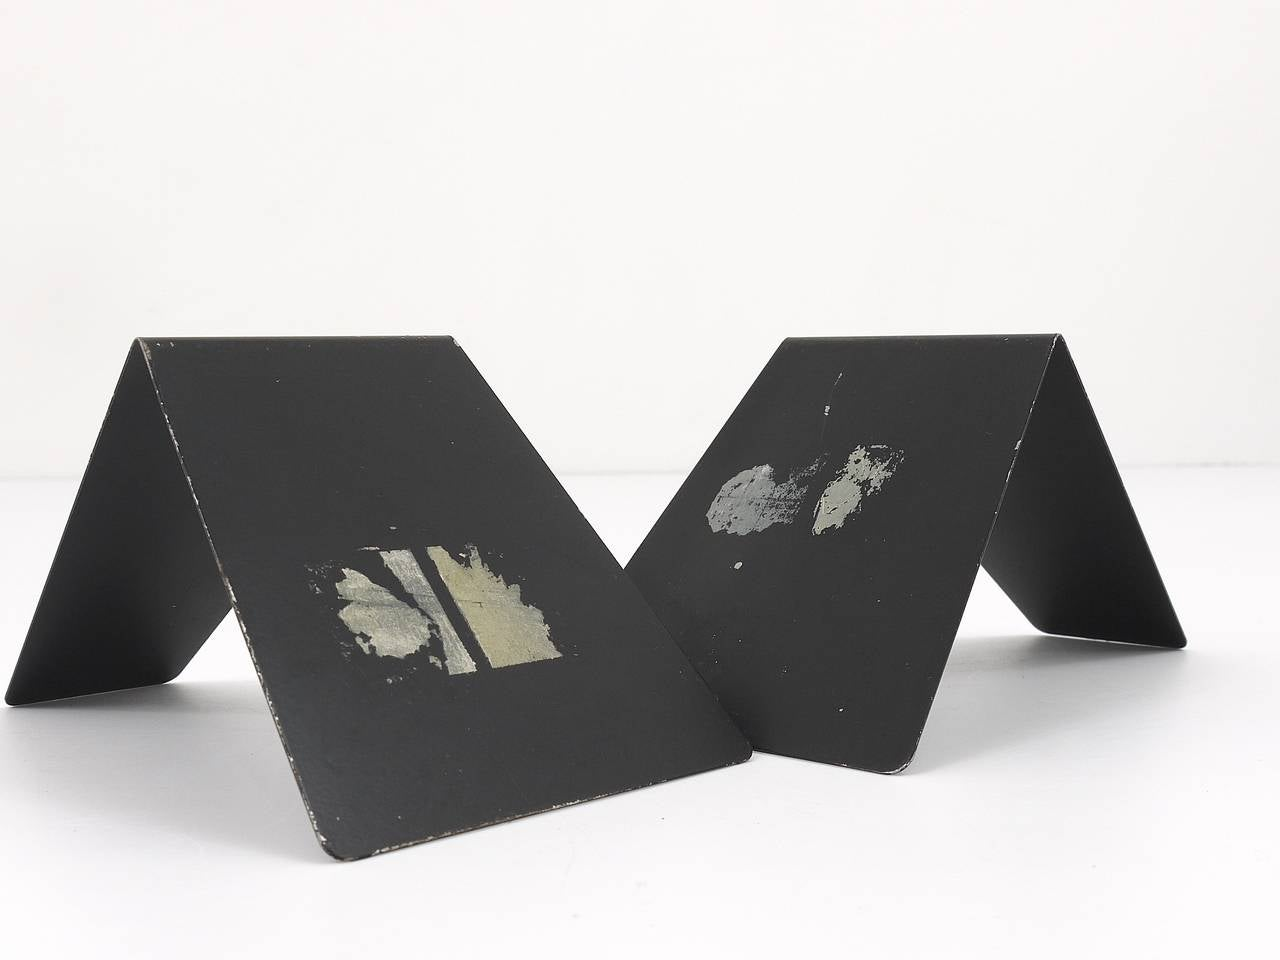 Bauhaus Black Metal Bookends by Marianne Brandt, 1930s for Ruppel, Germany For Sale 4